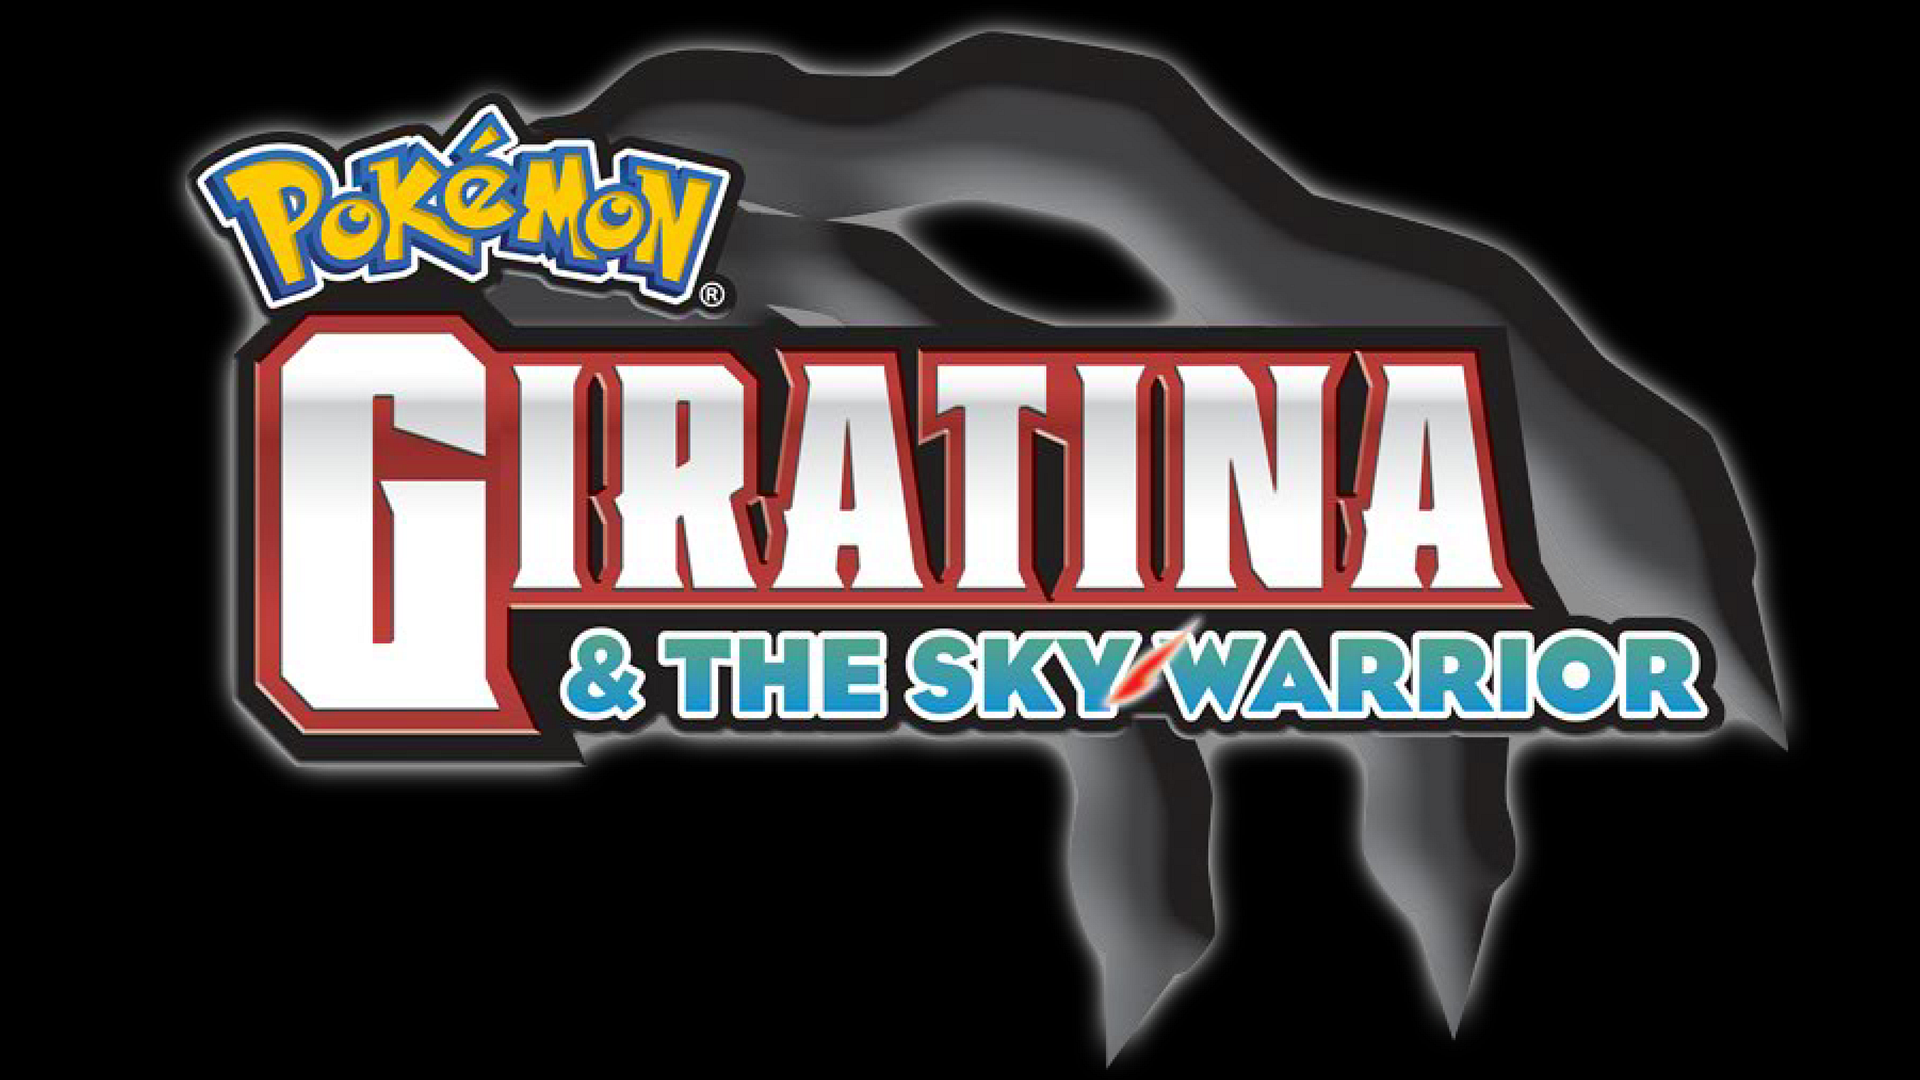 Pokémon Diamond & Pearl: Giratina & The Sky Warrior Logo